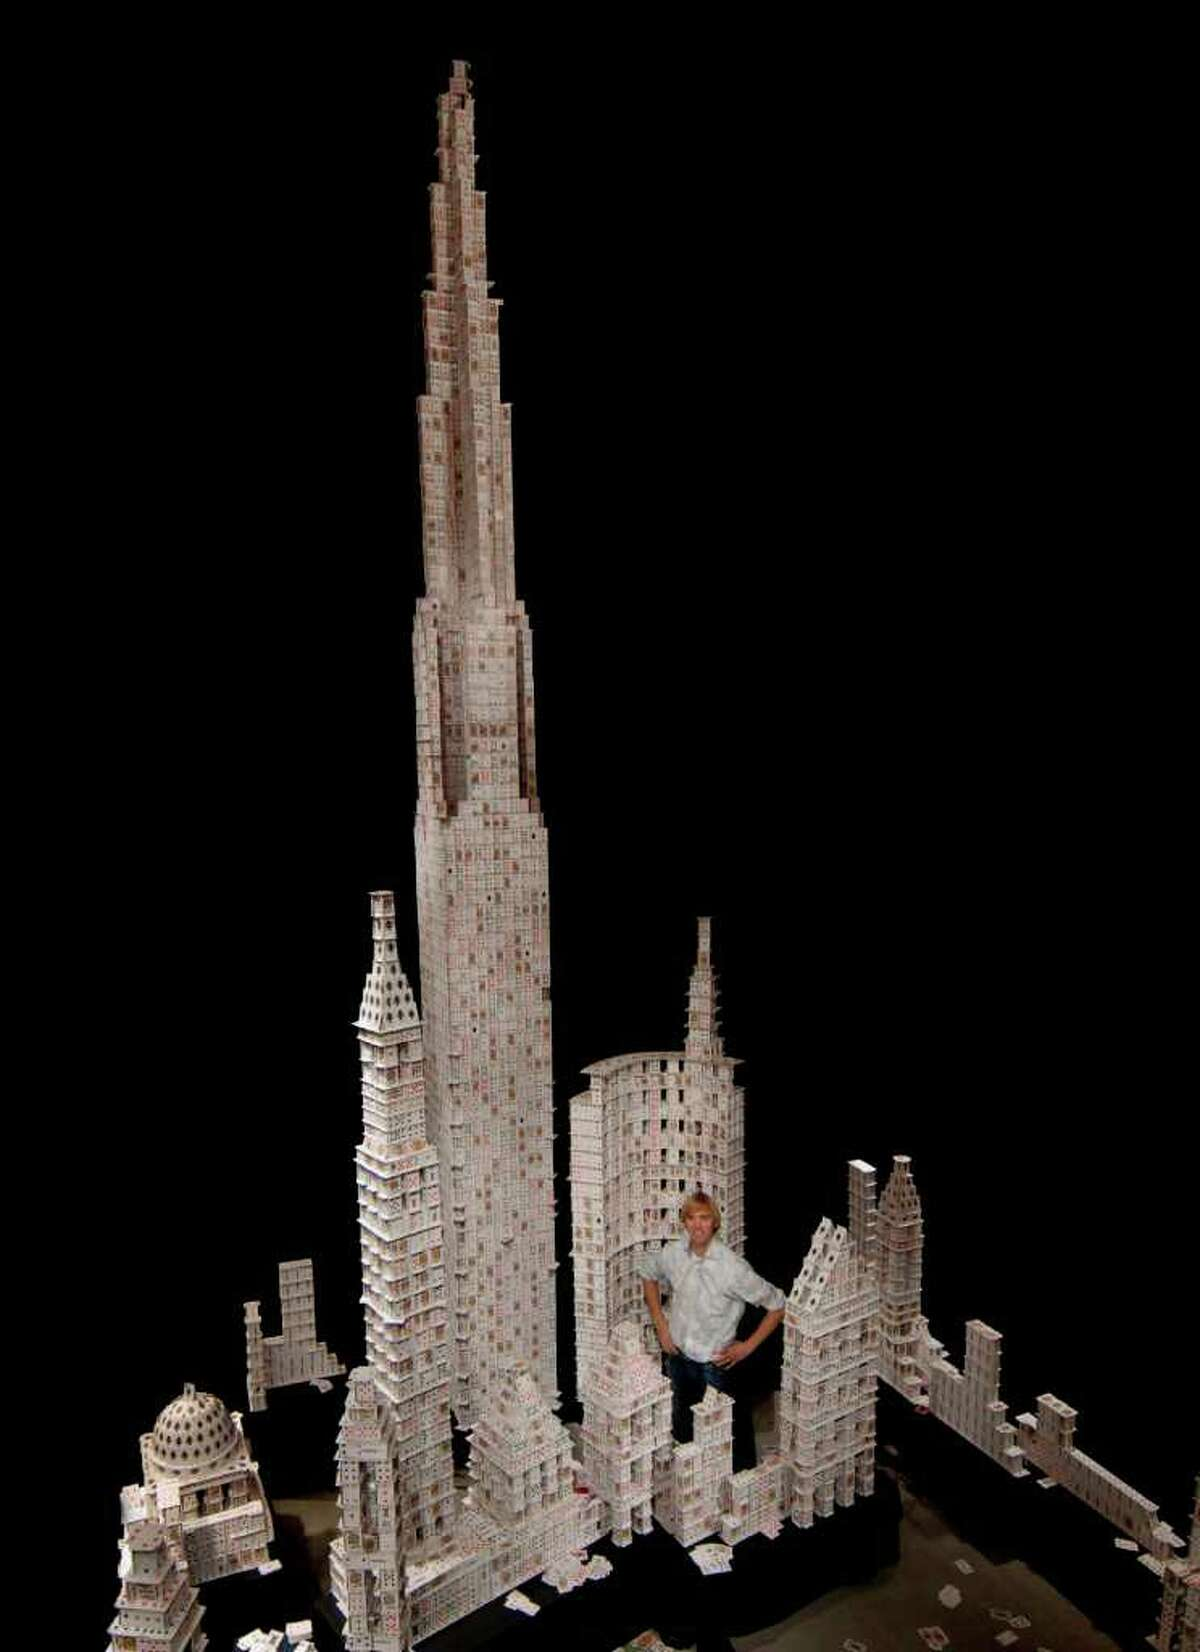 This model of the Dallas skyline was nearly 26 feet tall and required 1100 decks of cards to build. The tower was constructed in Dallas, Texas in 2007 and holds the Guinness World Record for Tallest House of Cards.